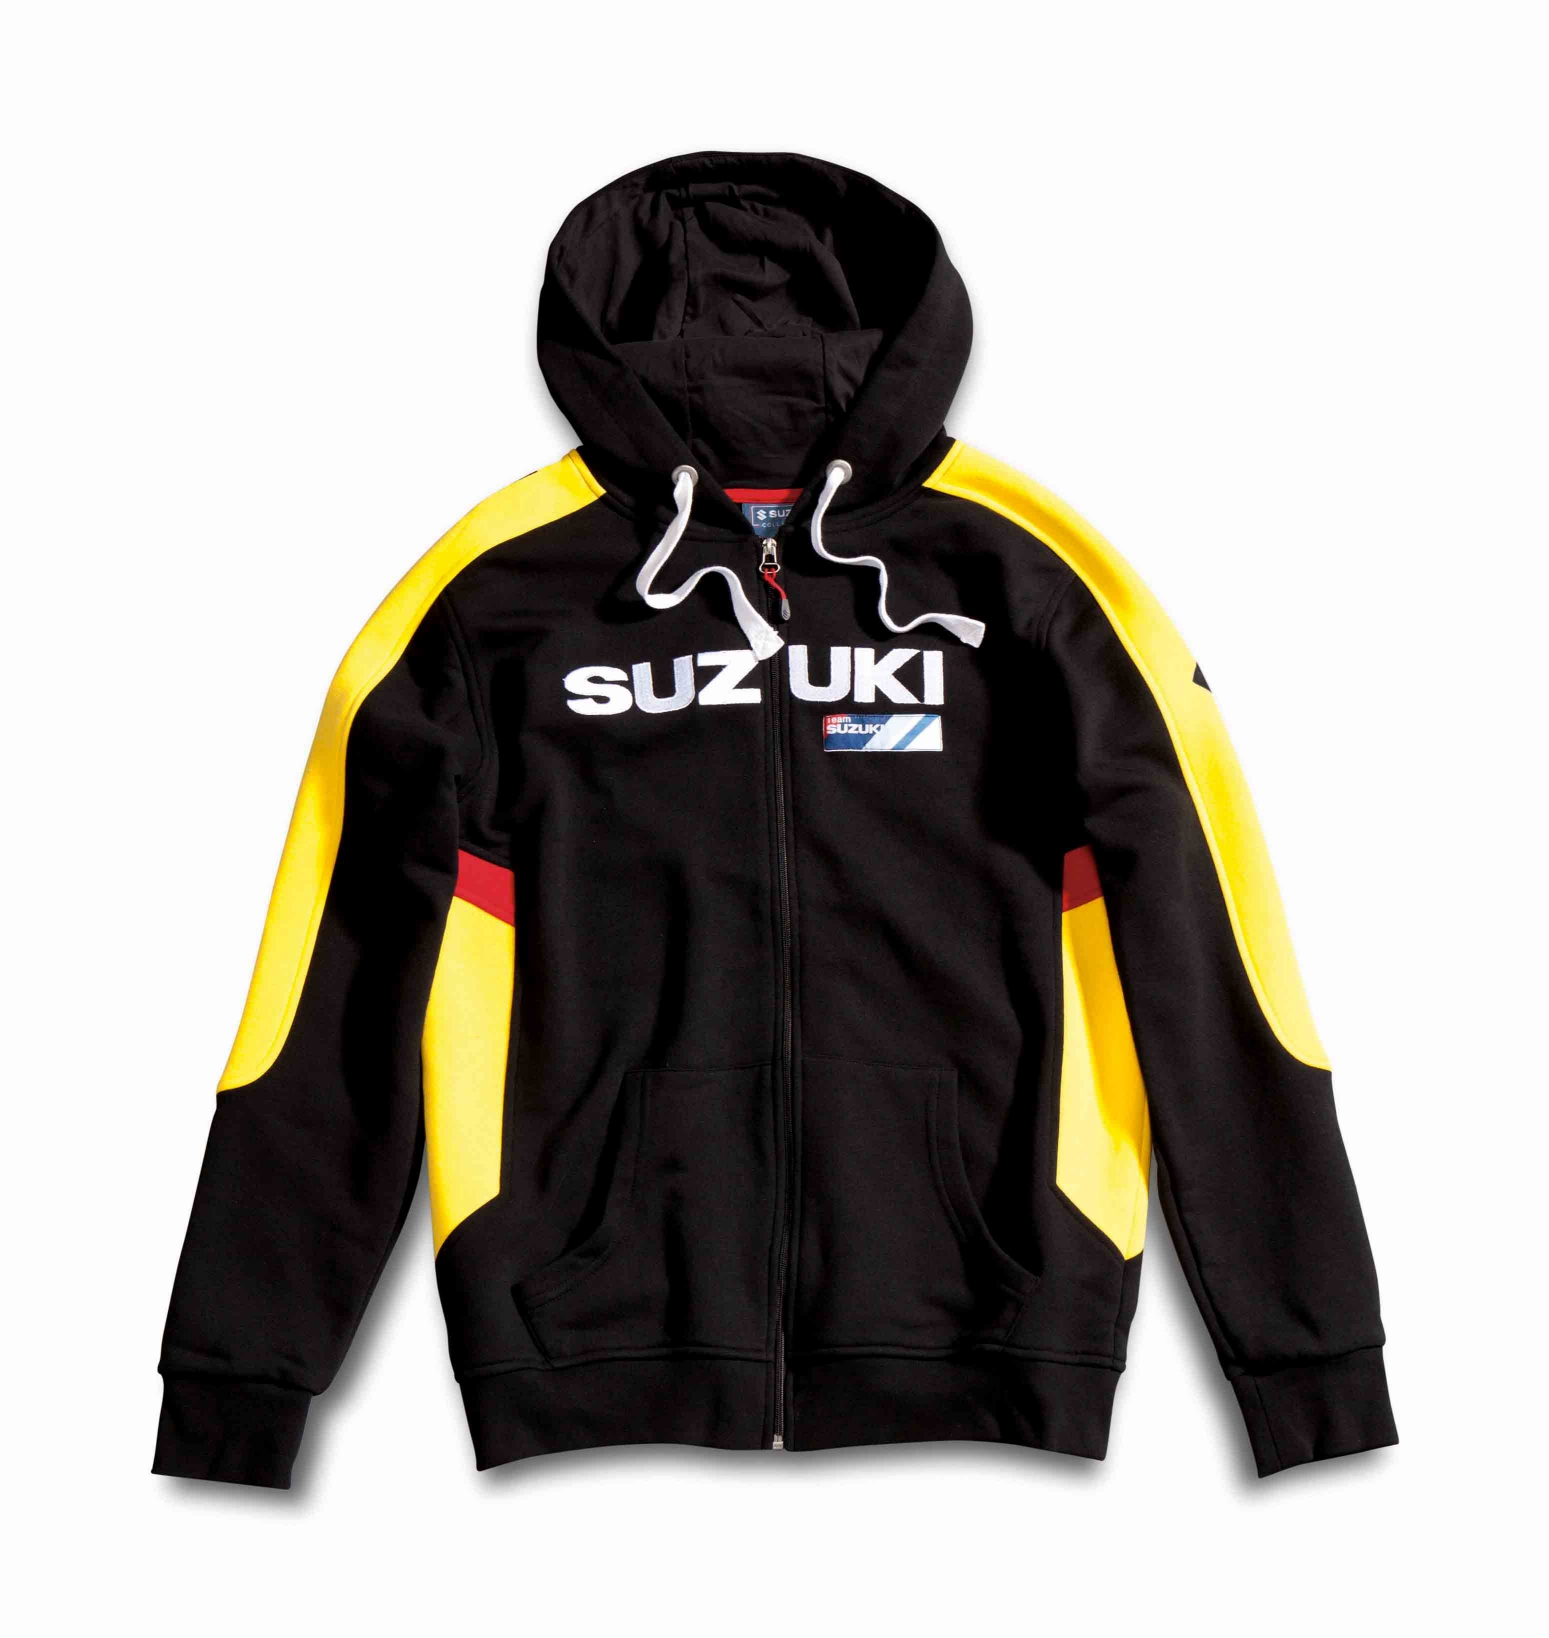 Team Suzuki Hoodies